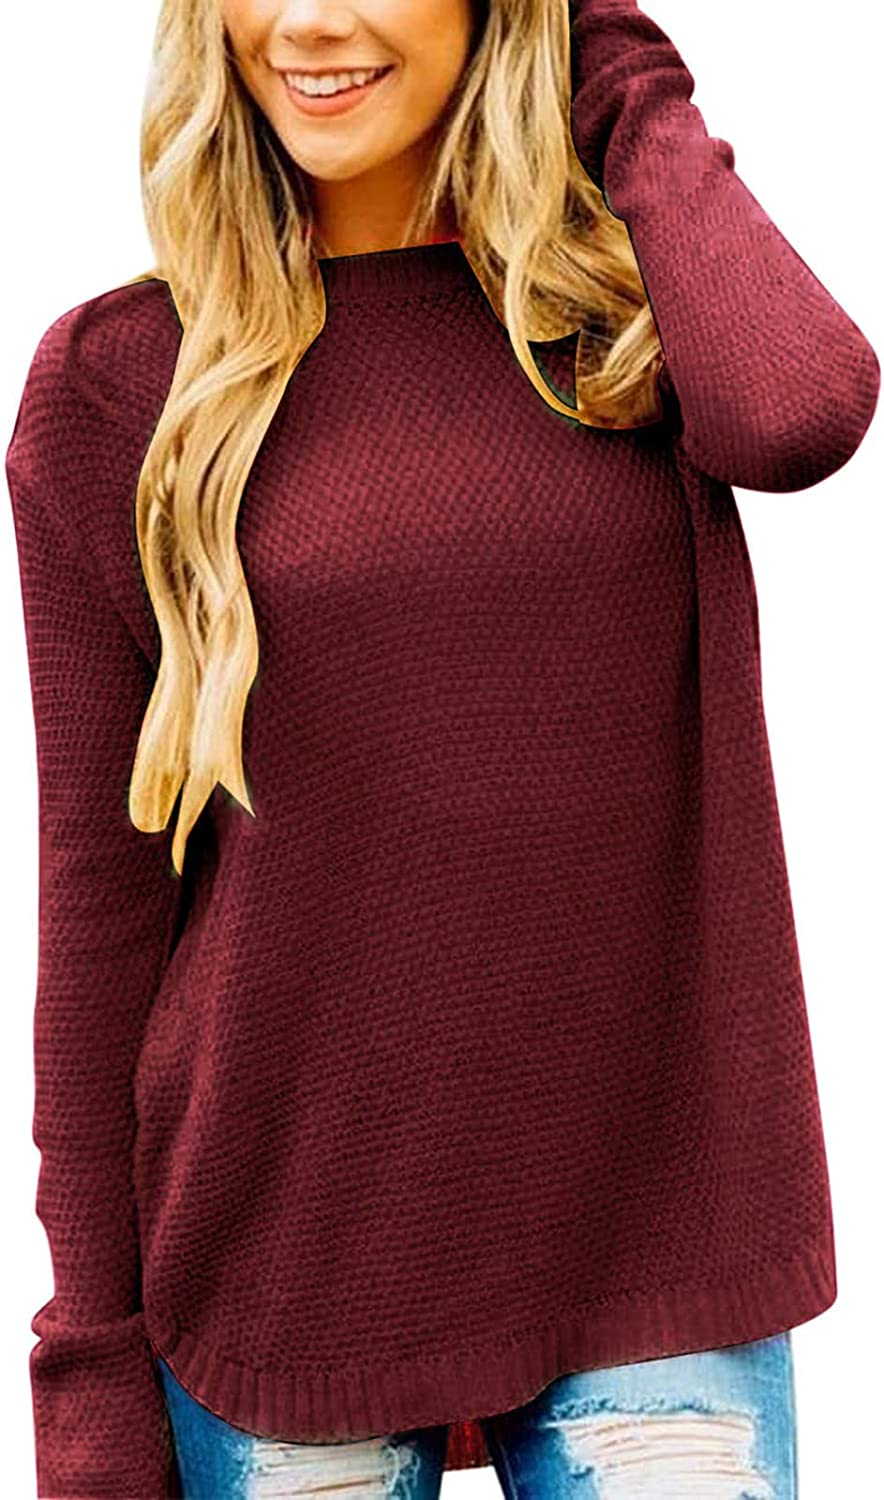 She Womens Long Sleeve Oversized Sweaters Crew Neck Solid Knit Pullover Jumpers Tops